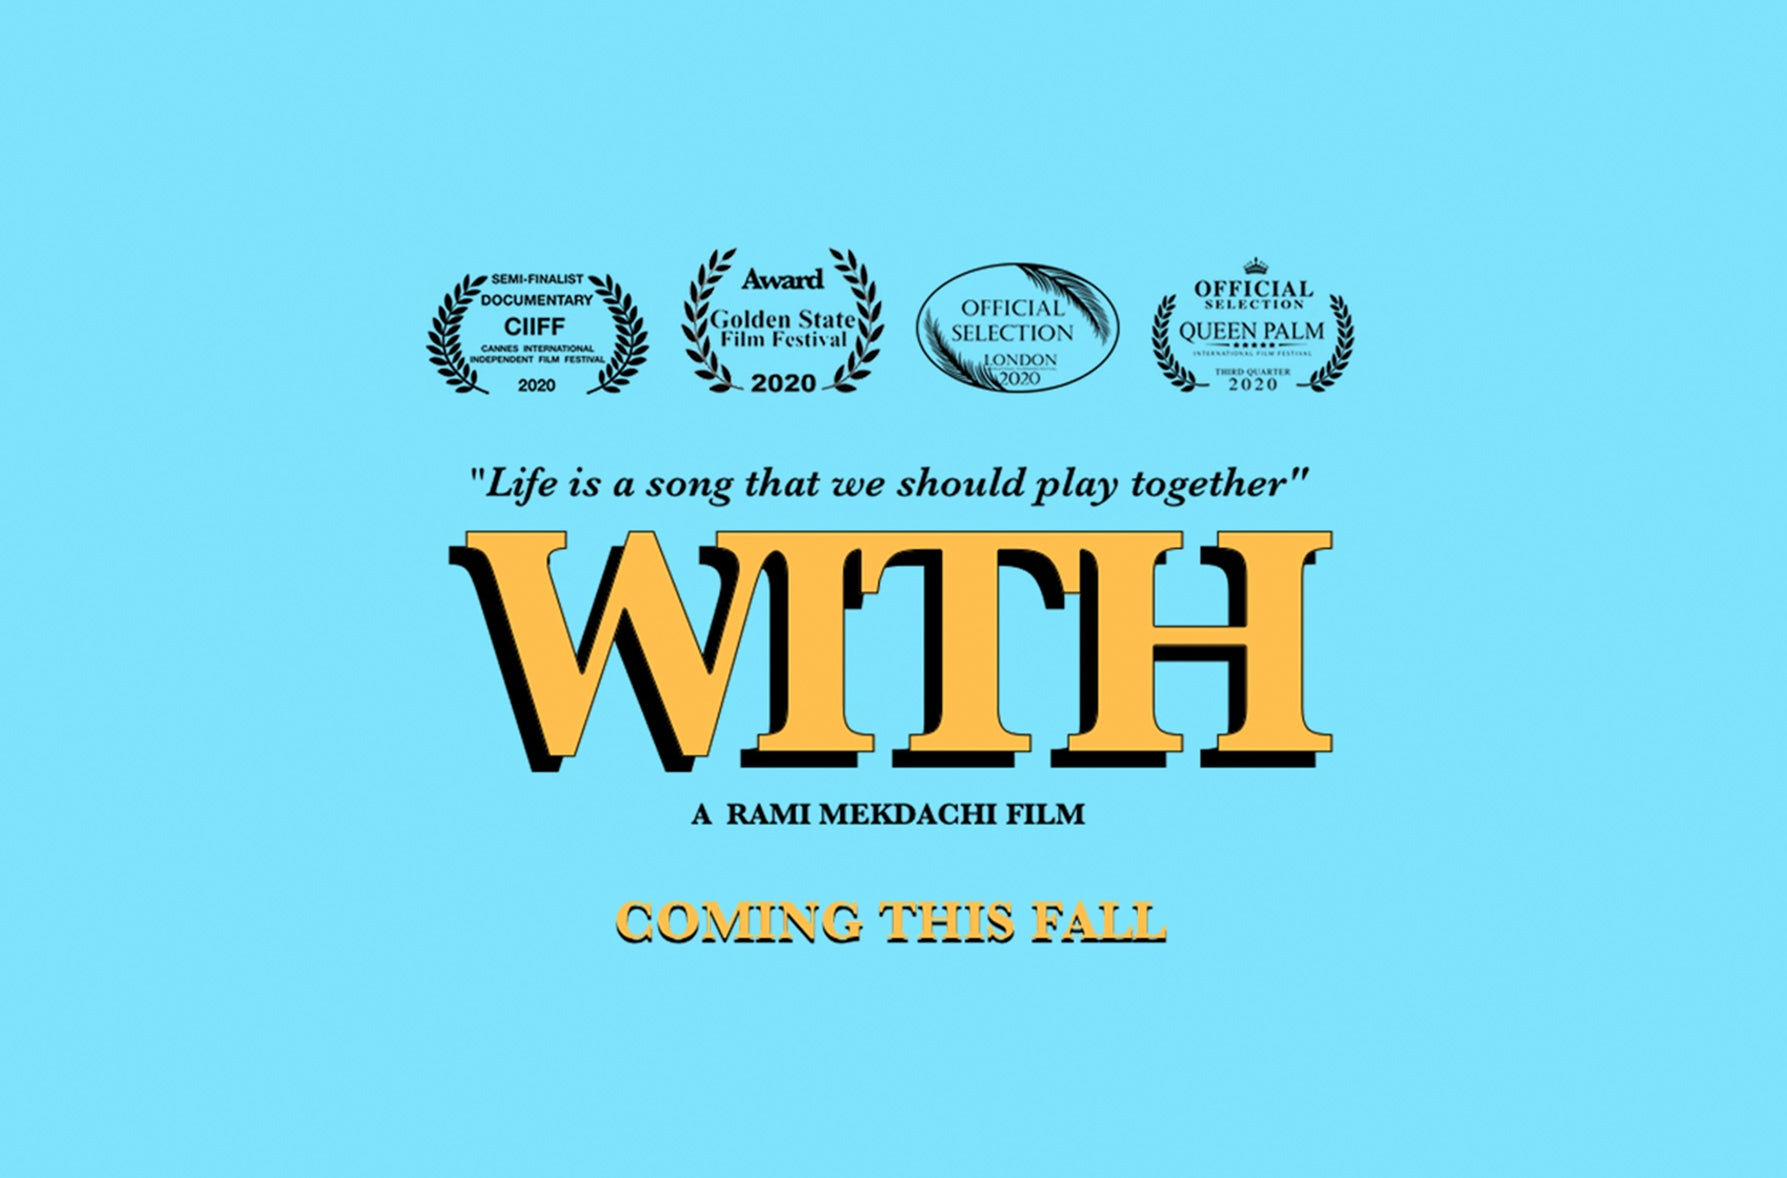 OUR MOVIE 'WITH' IS COMING OUT THIS FALL !